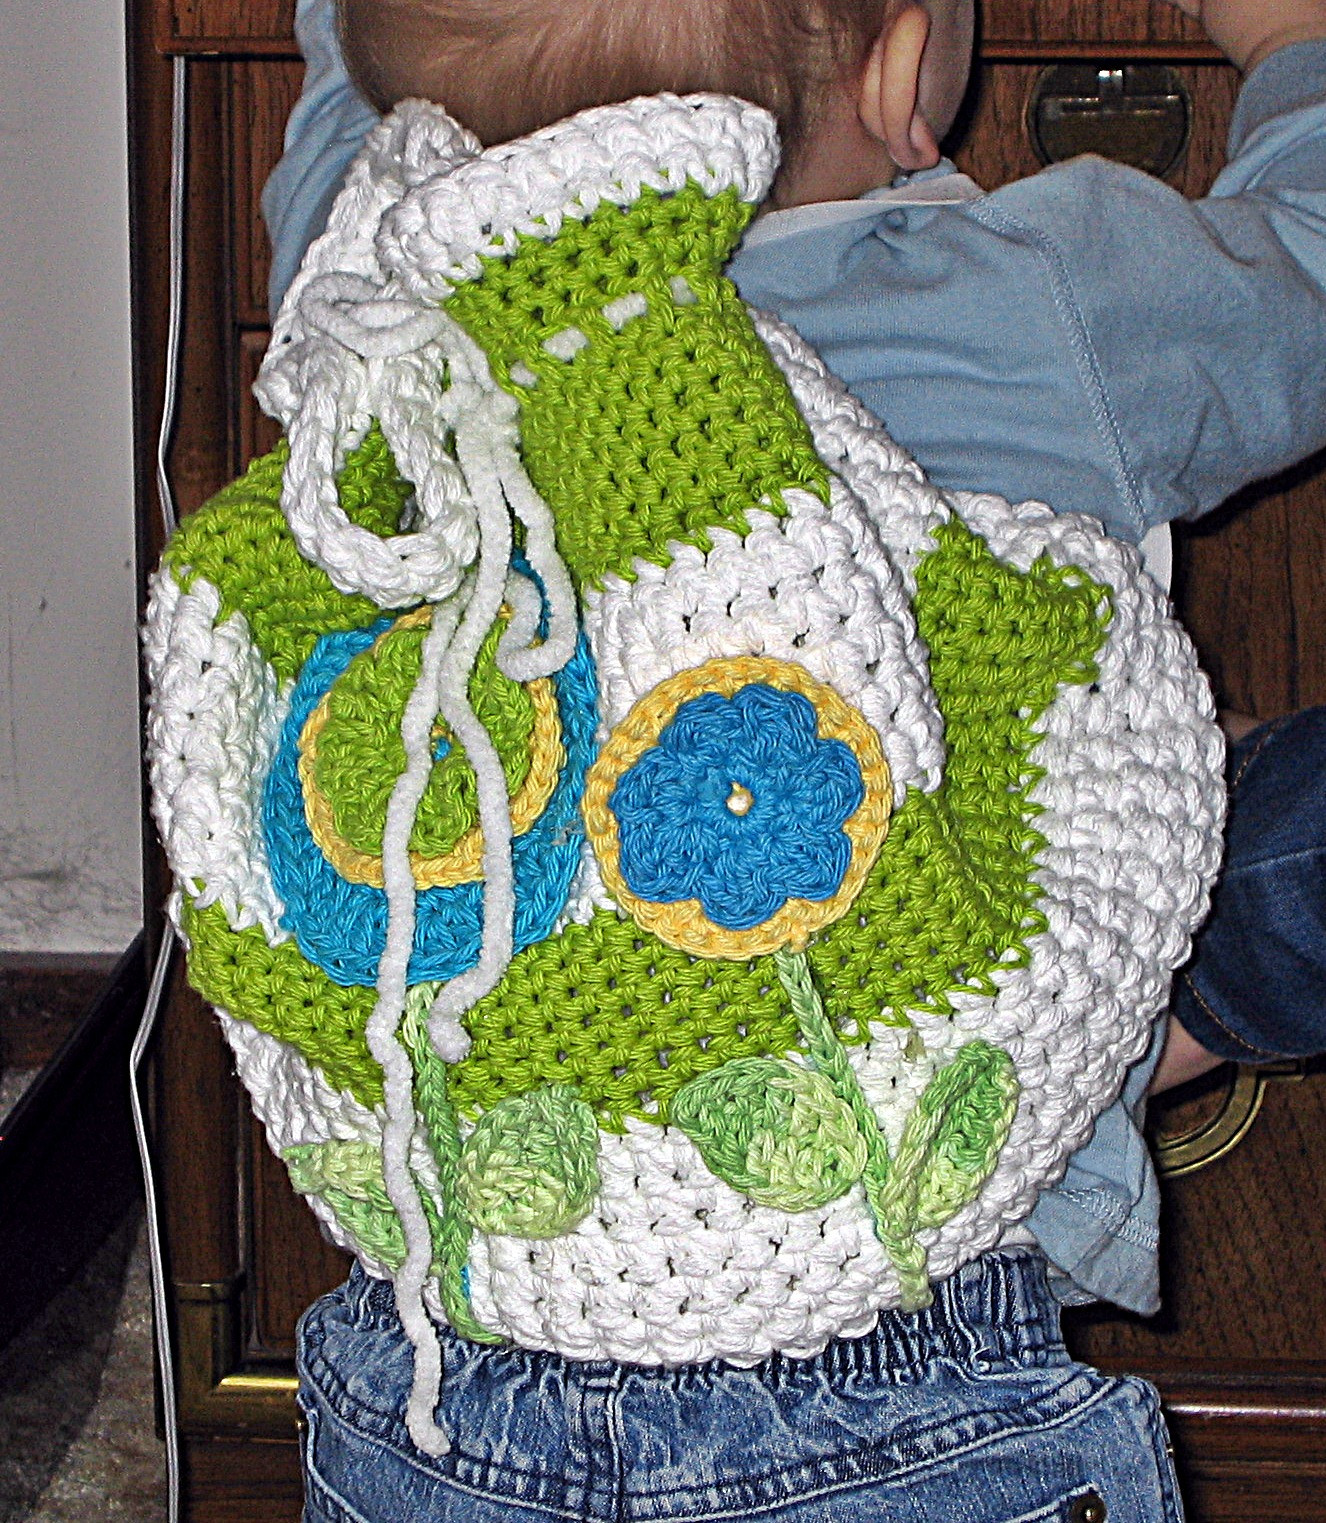 Quick and Easy Crochet Awesome Handmade by Annabelle Quick and Easy Crochet Backpack Of Incredible 48 Pics Quick and Easy Crochet